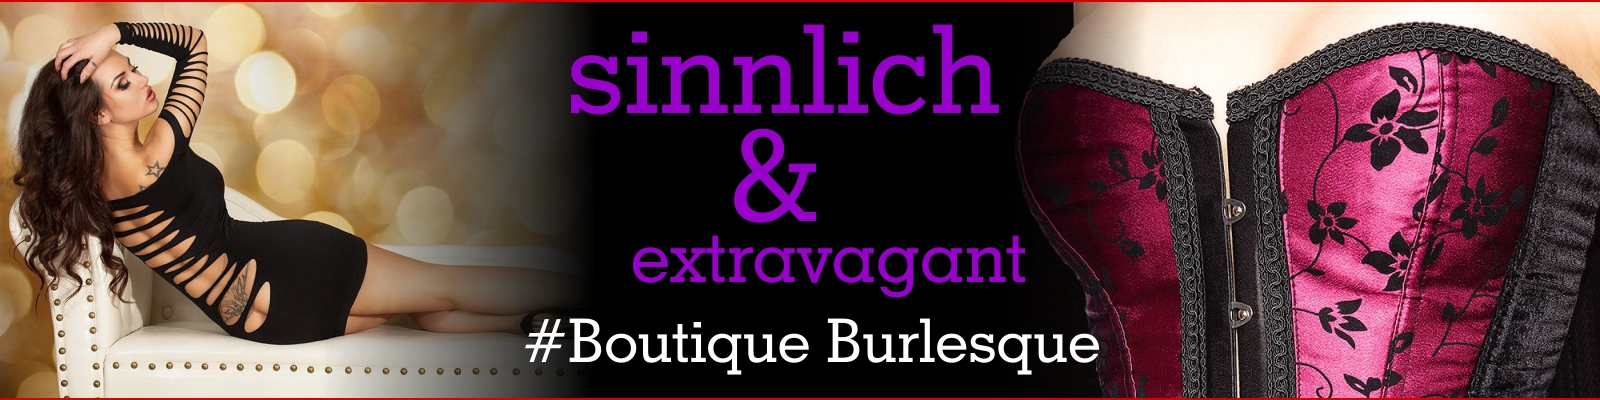 Boutique Burlesque sexy sinnliche Outfits für extravagante Parties in der Spielerspelunke